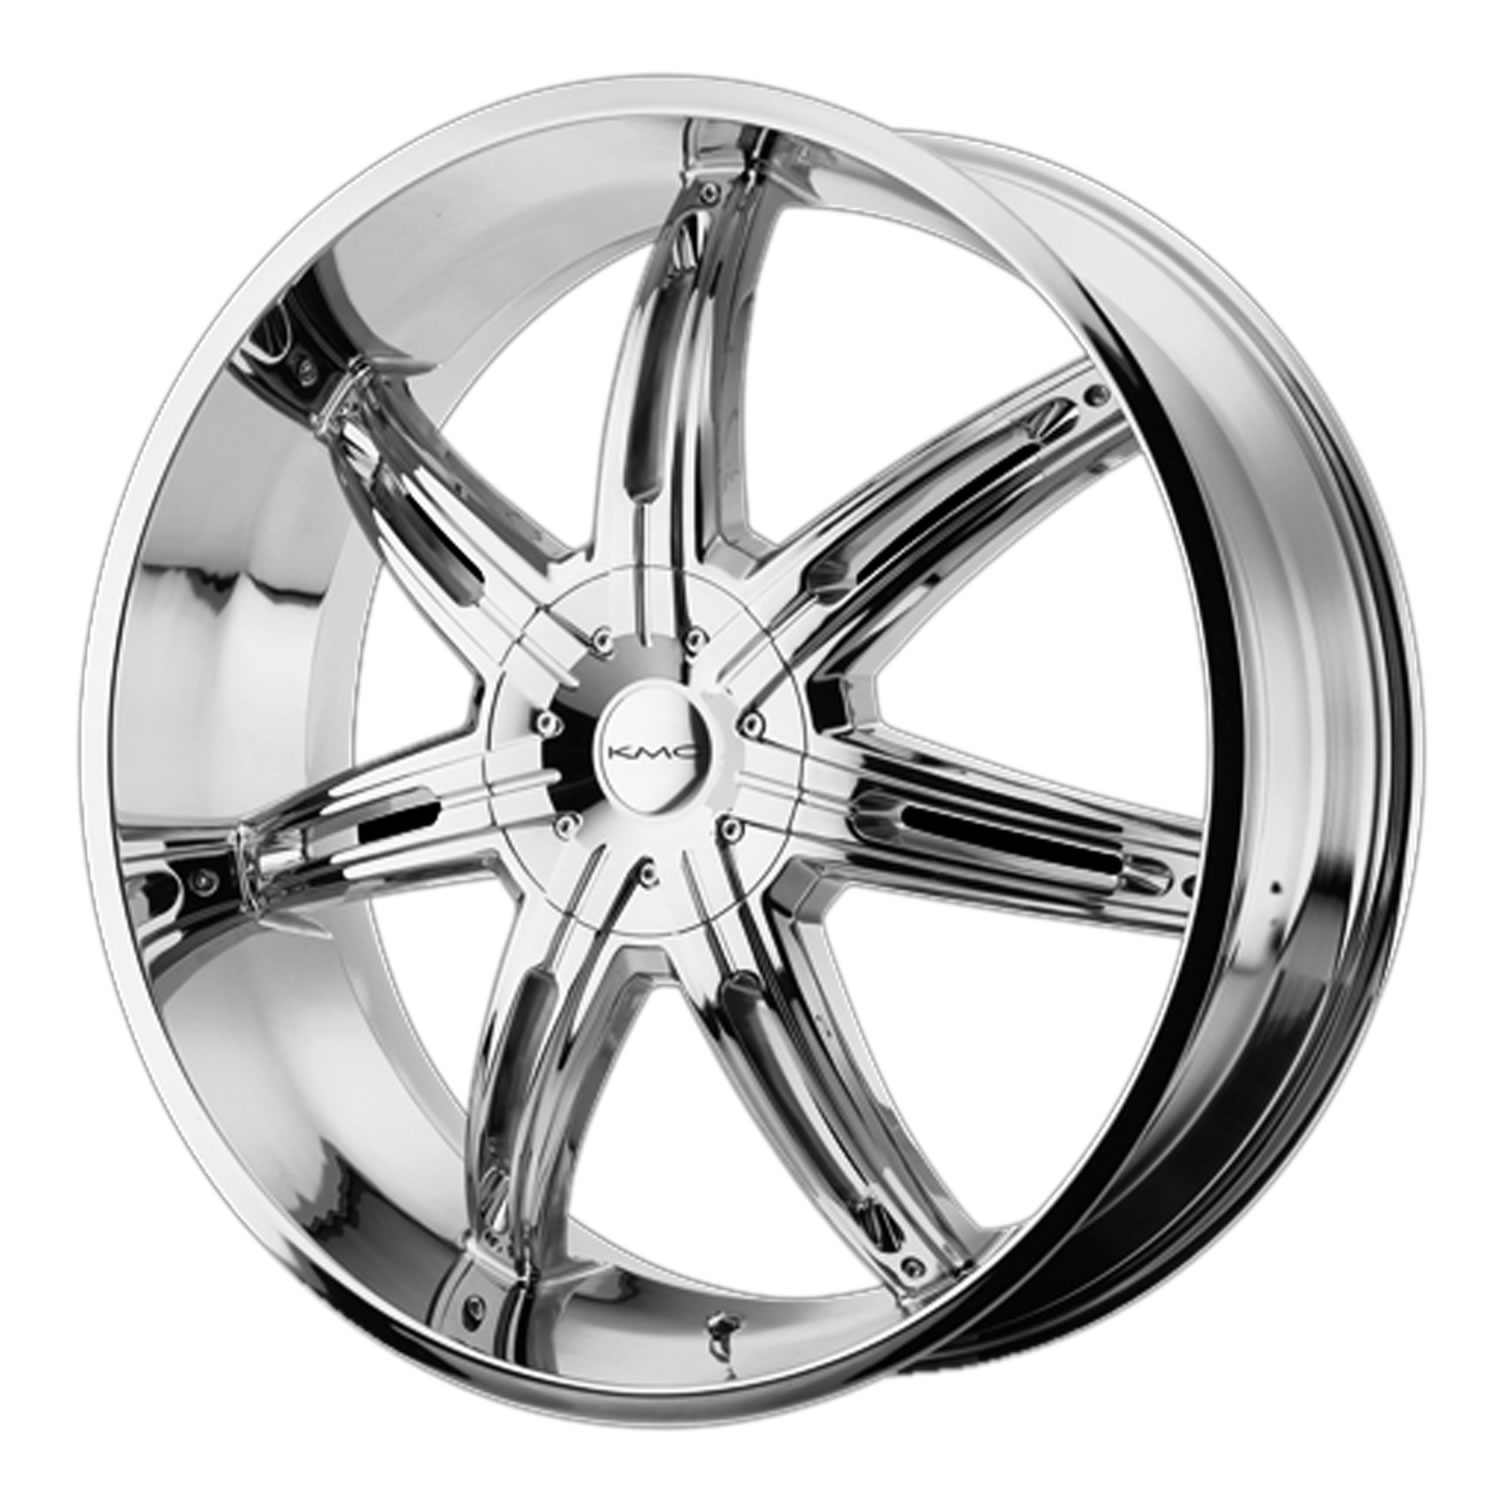 - Wheel Specials - KMC Wheels KM665 Surge Chrome